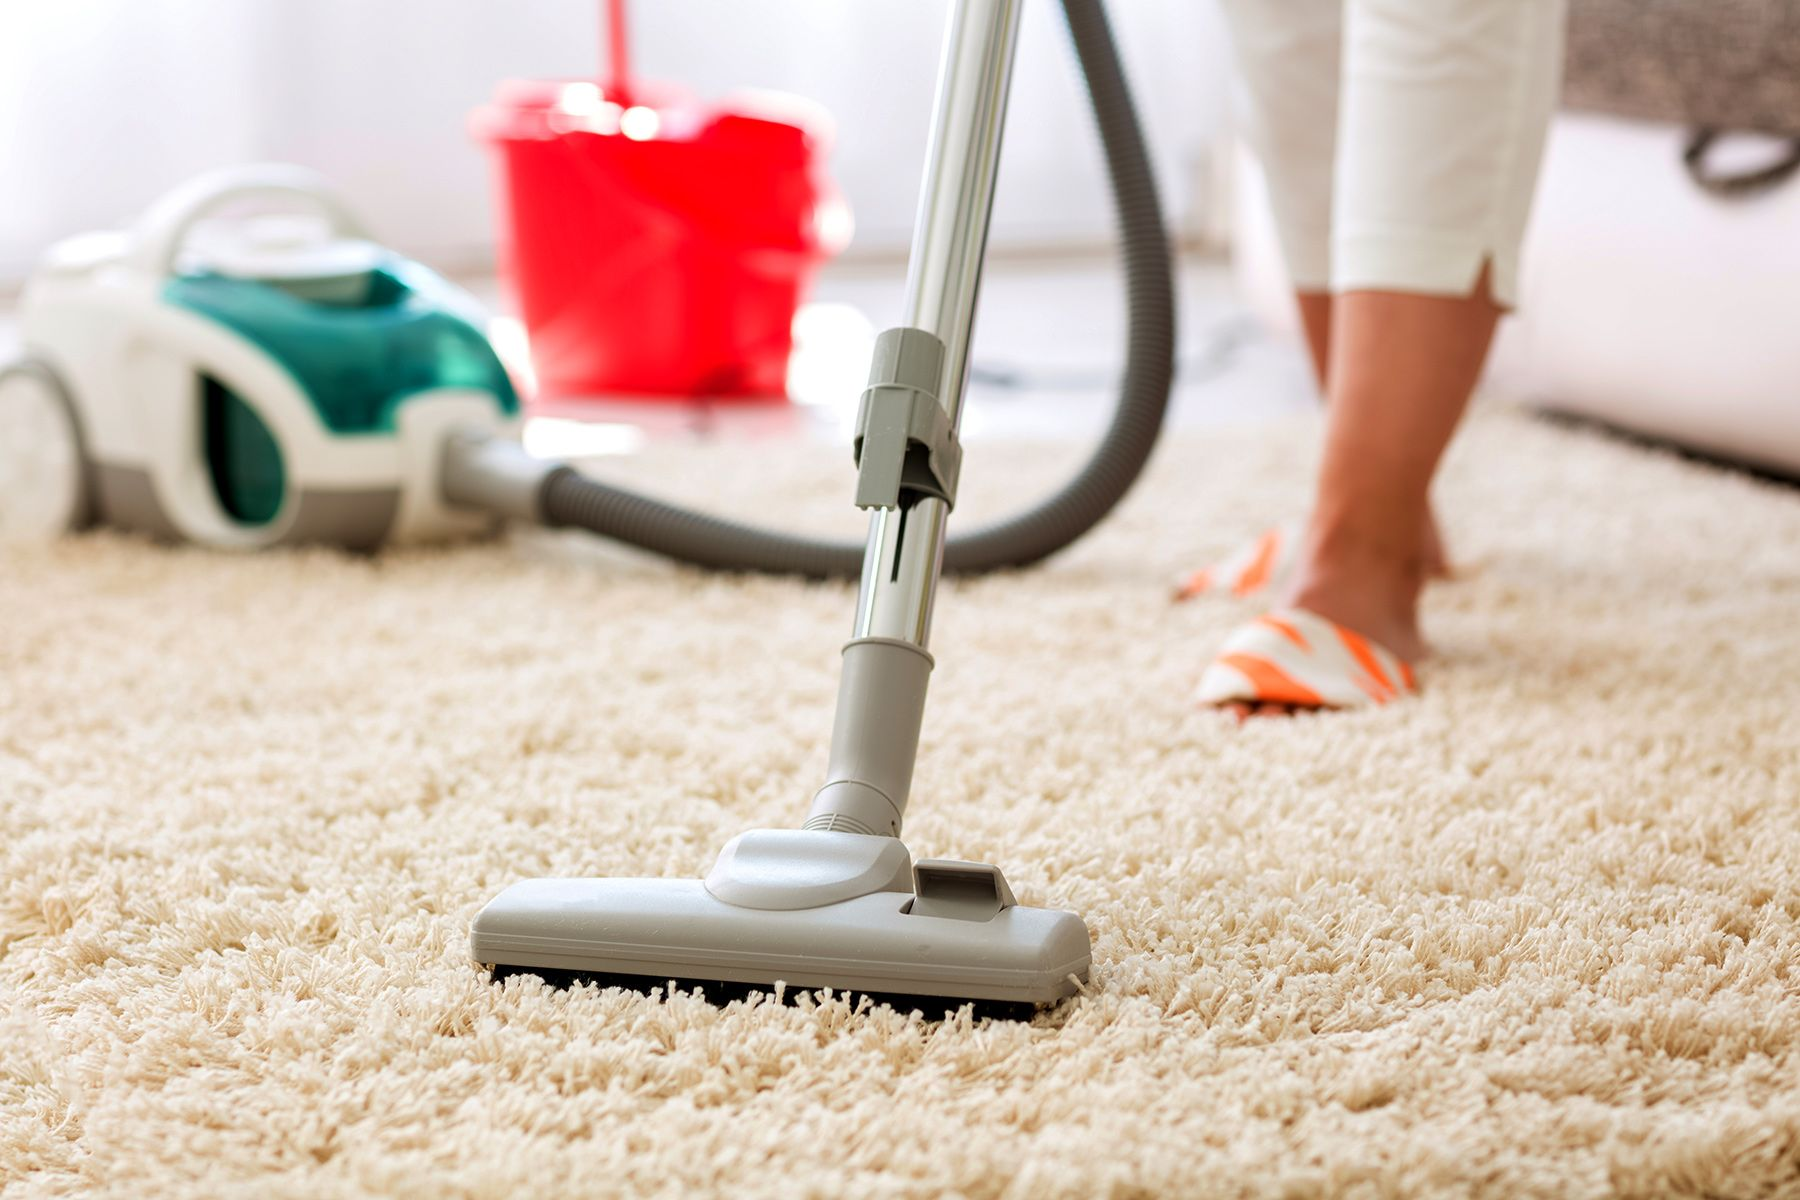 Flea Control In Your Home In 2020 Cheap Carpet Cleaning Residential Cleaning How To Clean Carpet